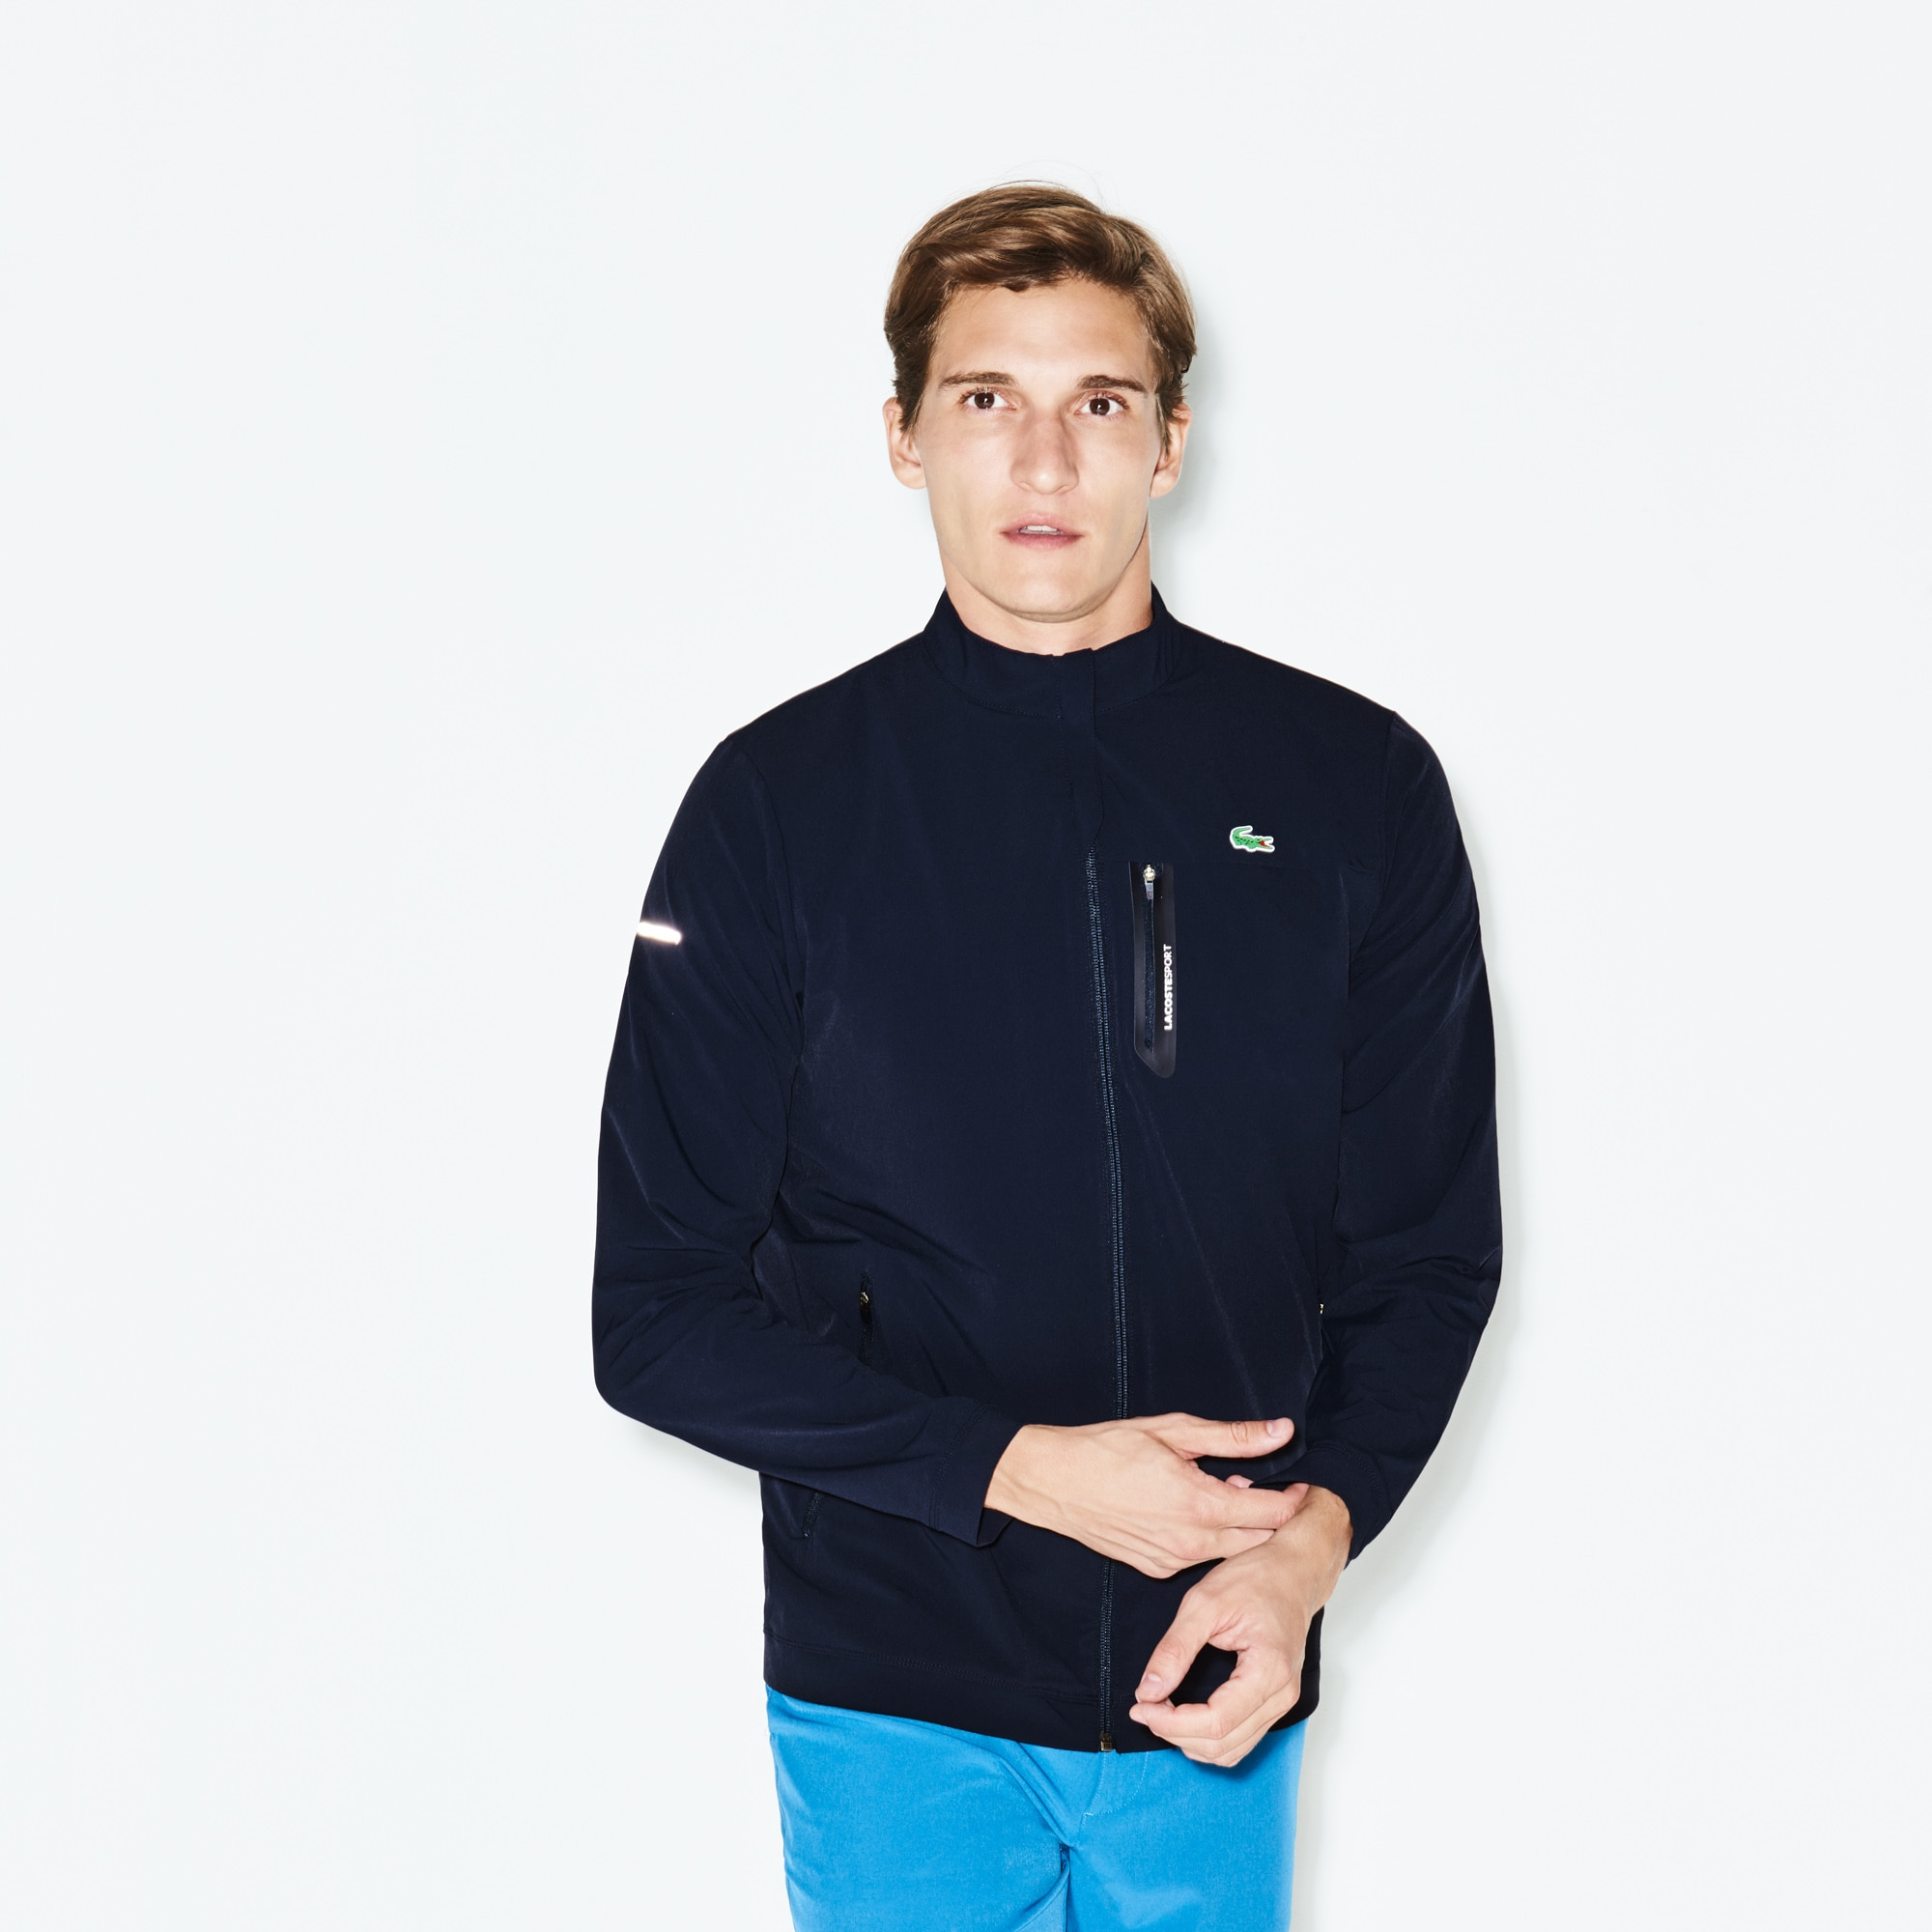 Men's Lacoste SPORT Technical Taffeta Zip Golf Jacket